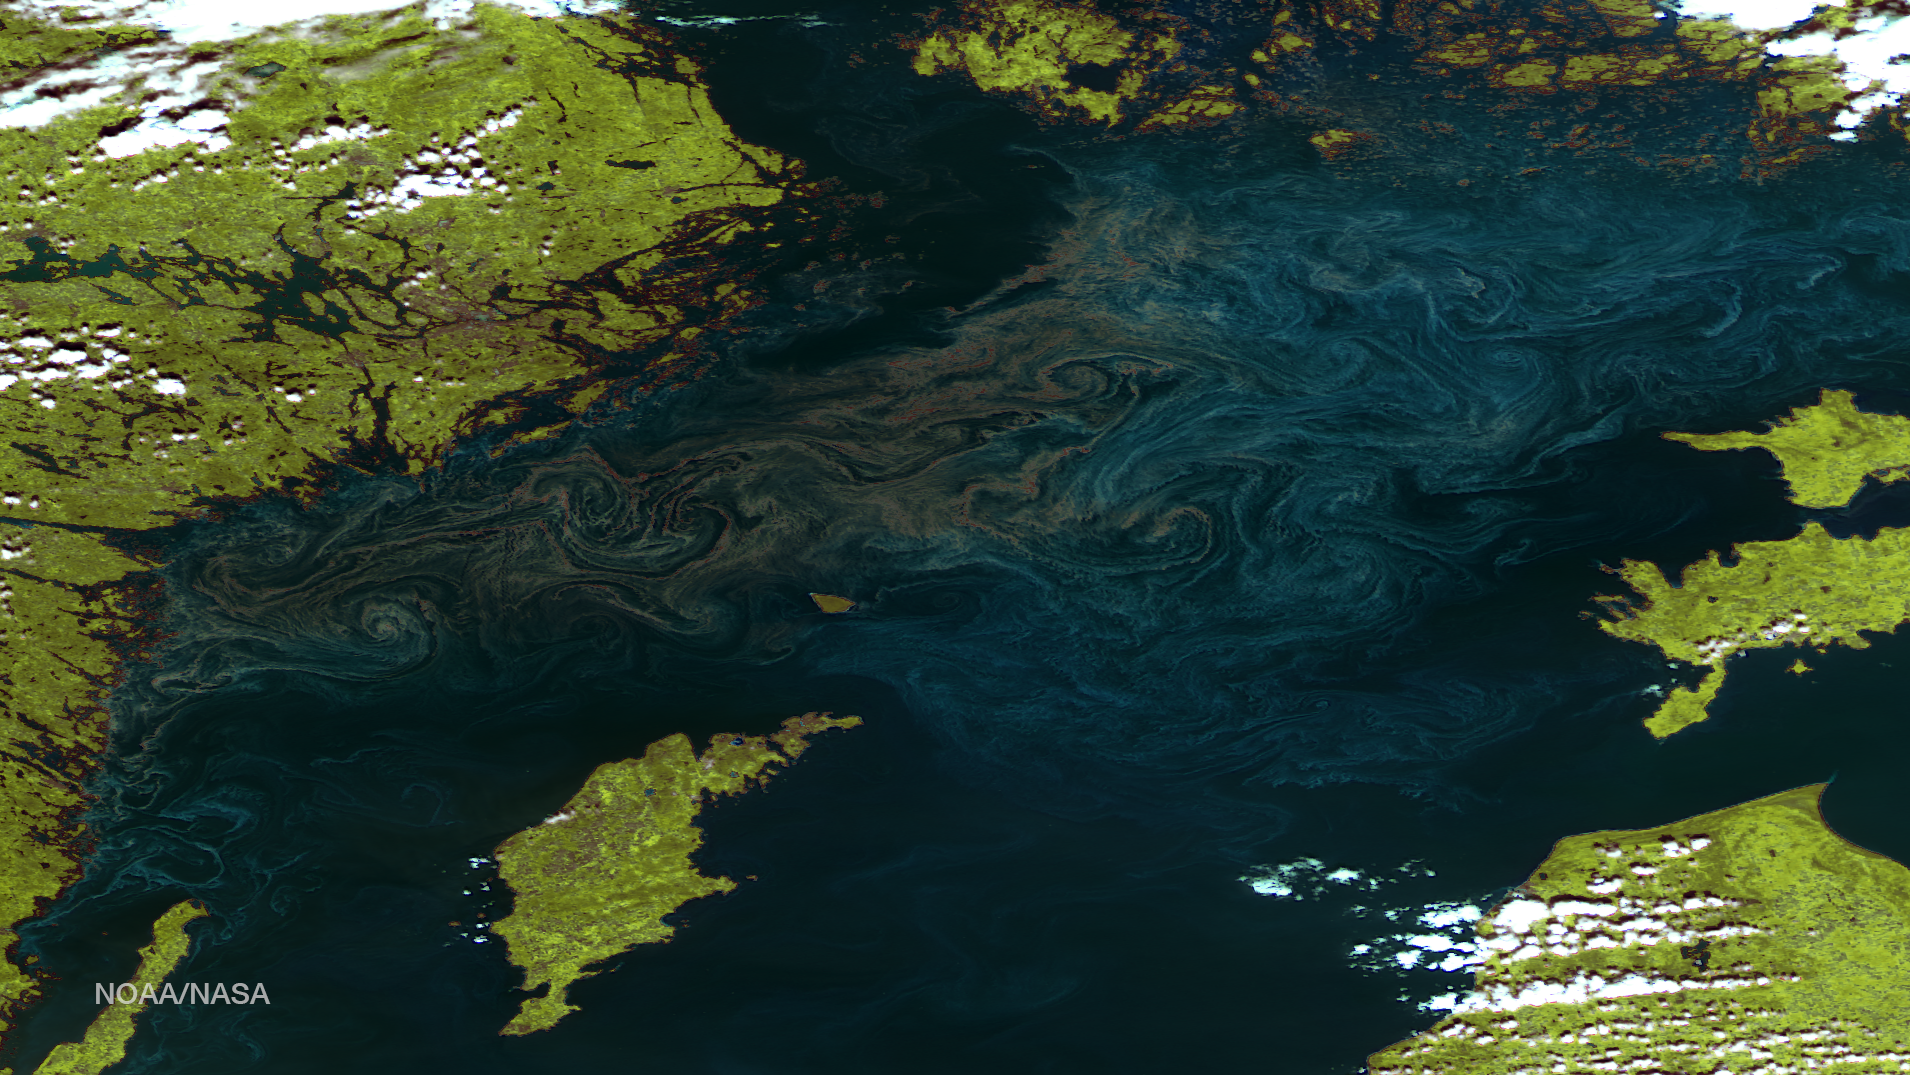 This image, taken by NOAA/NASA's Suomi NPP satellite on July 24, 2014, shows swirls of plankton blooms in the Baltic Sea